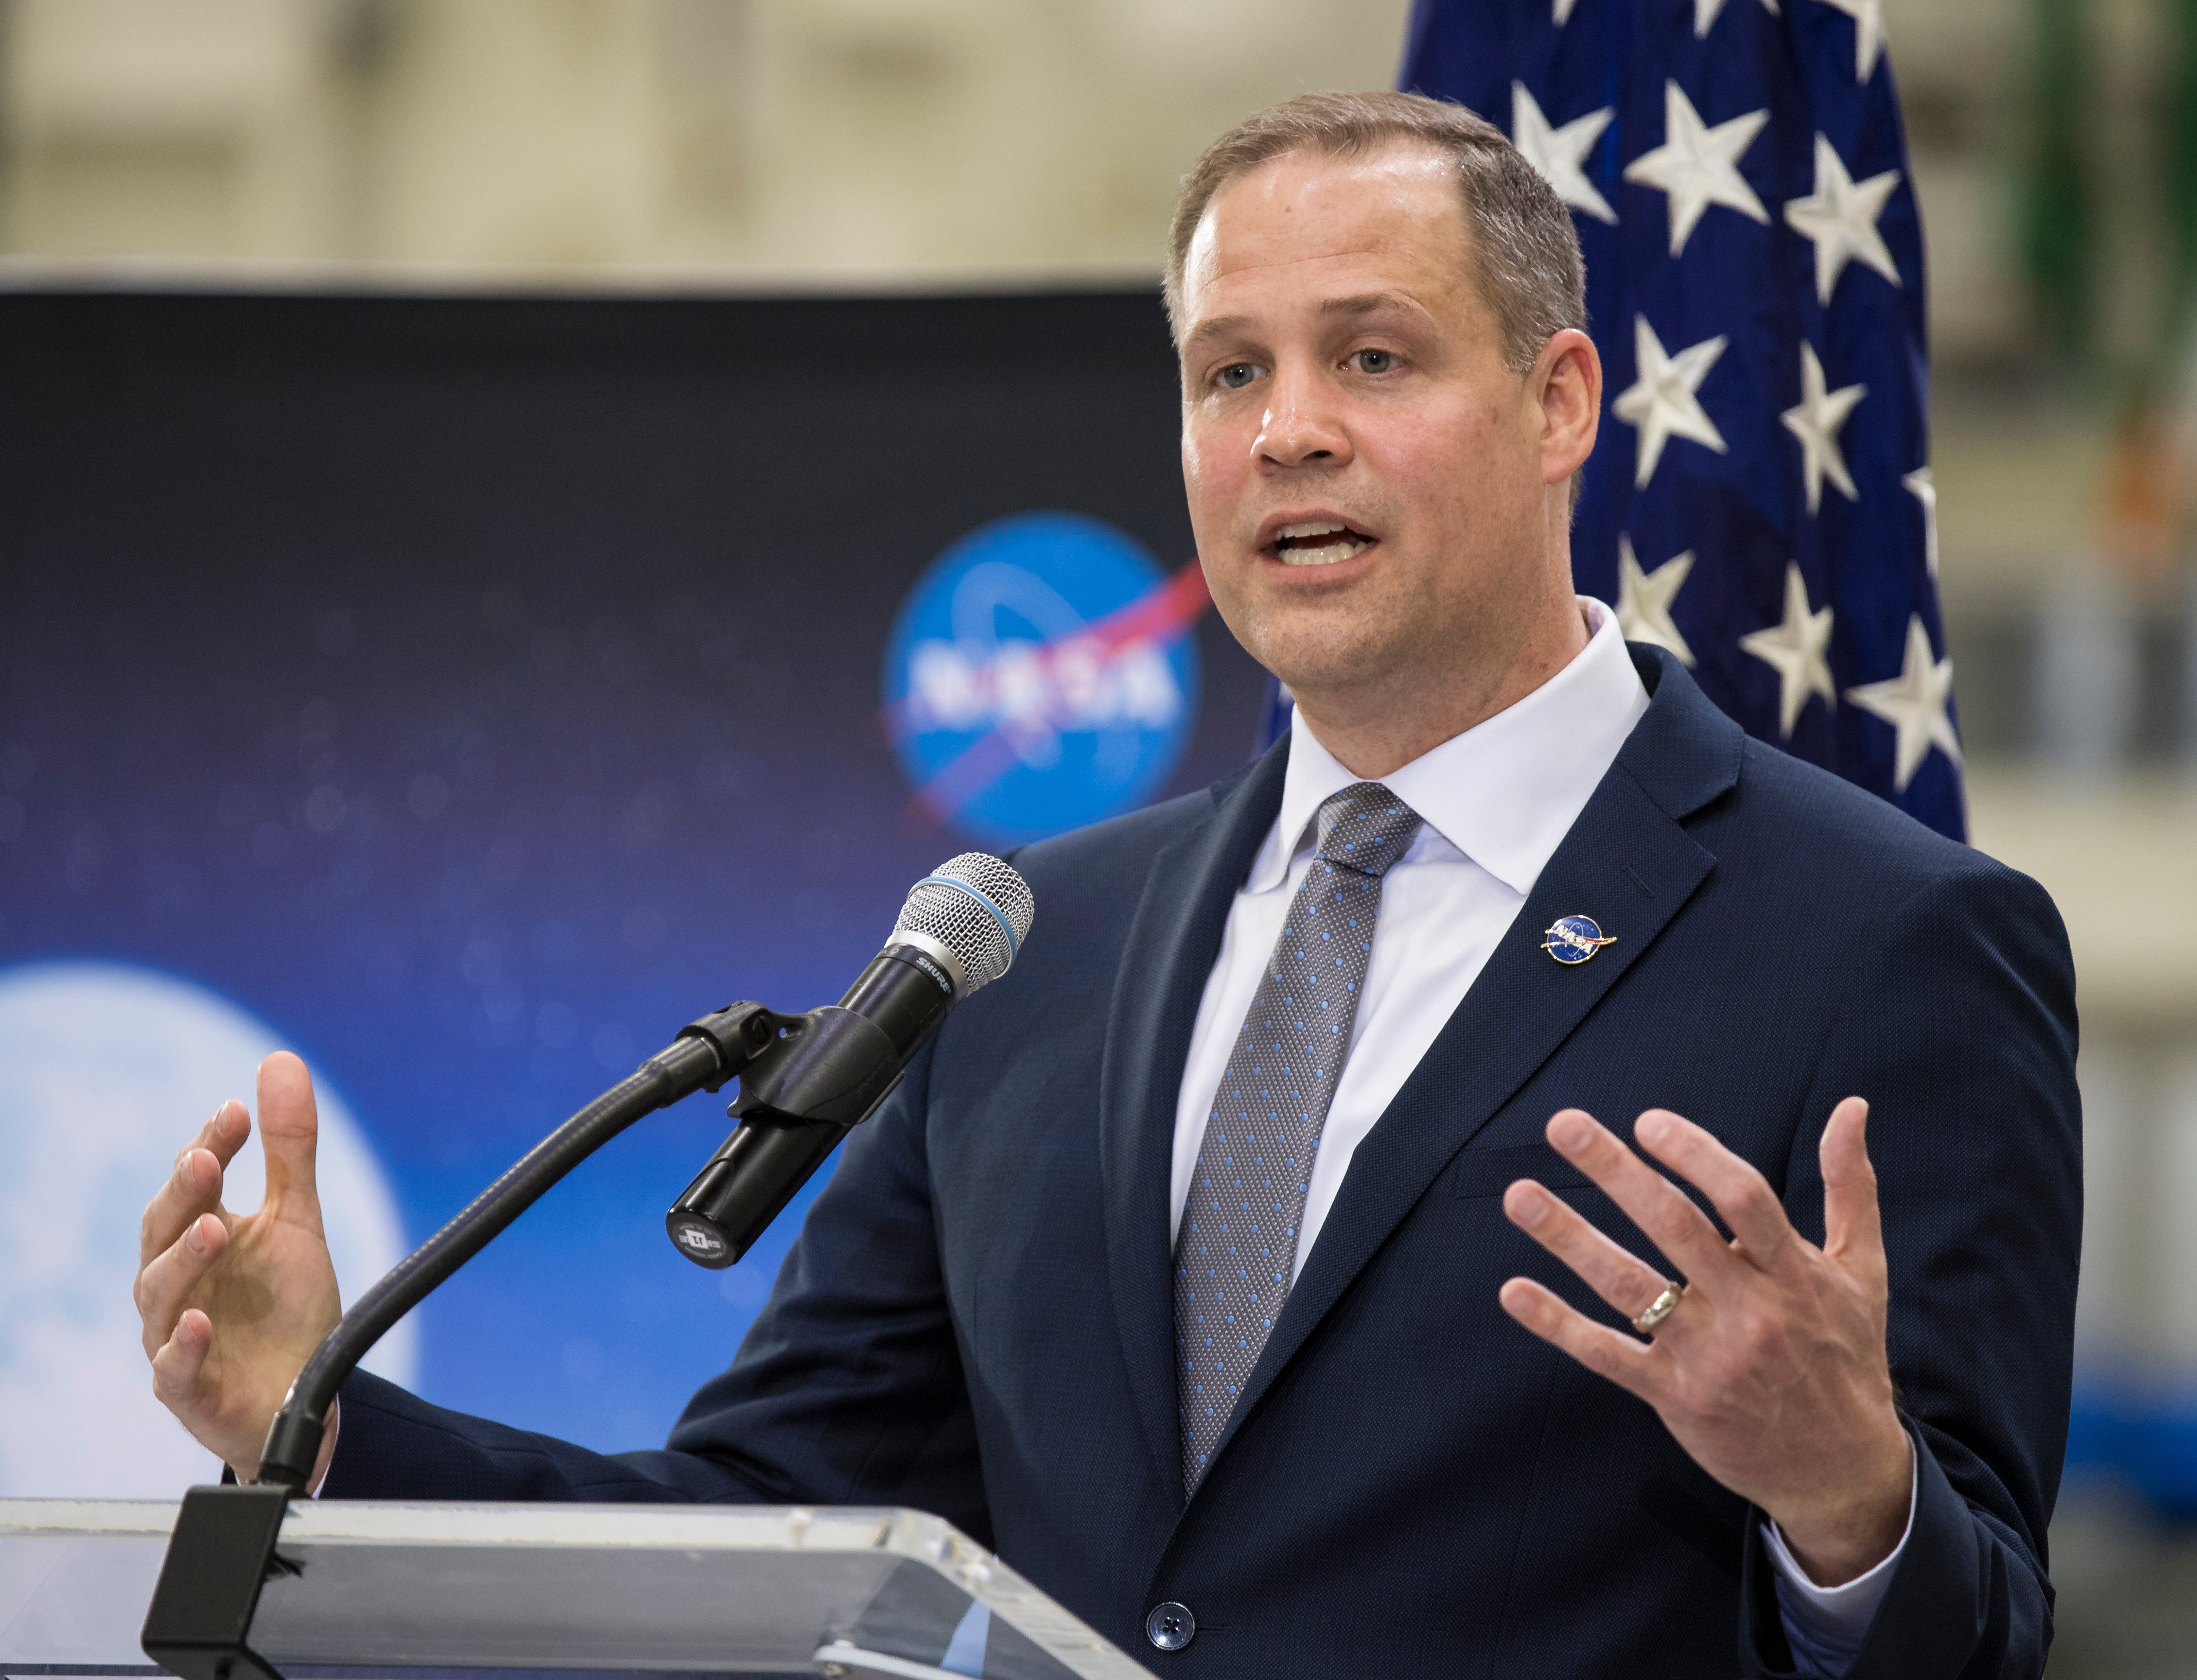 CAPE CANAVERAL, FL - MARCH 11: In this handout photo provided by NASA, NASA Administrator Jim Bridenstine talks to employees about the agencys progress toward sending astronauts to the Moon and on to Mars during a televised event at the Neil Armstrong Operations and Checkout Building at NASA's Kennedy Space Center on March 11, 2019 in Cape Canaveral, Florida. (Aubrey Gemignani/NASA via Getty Images)